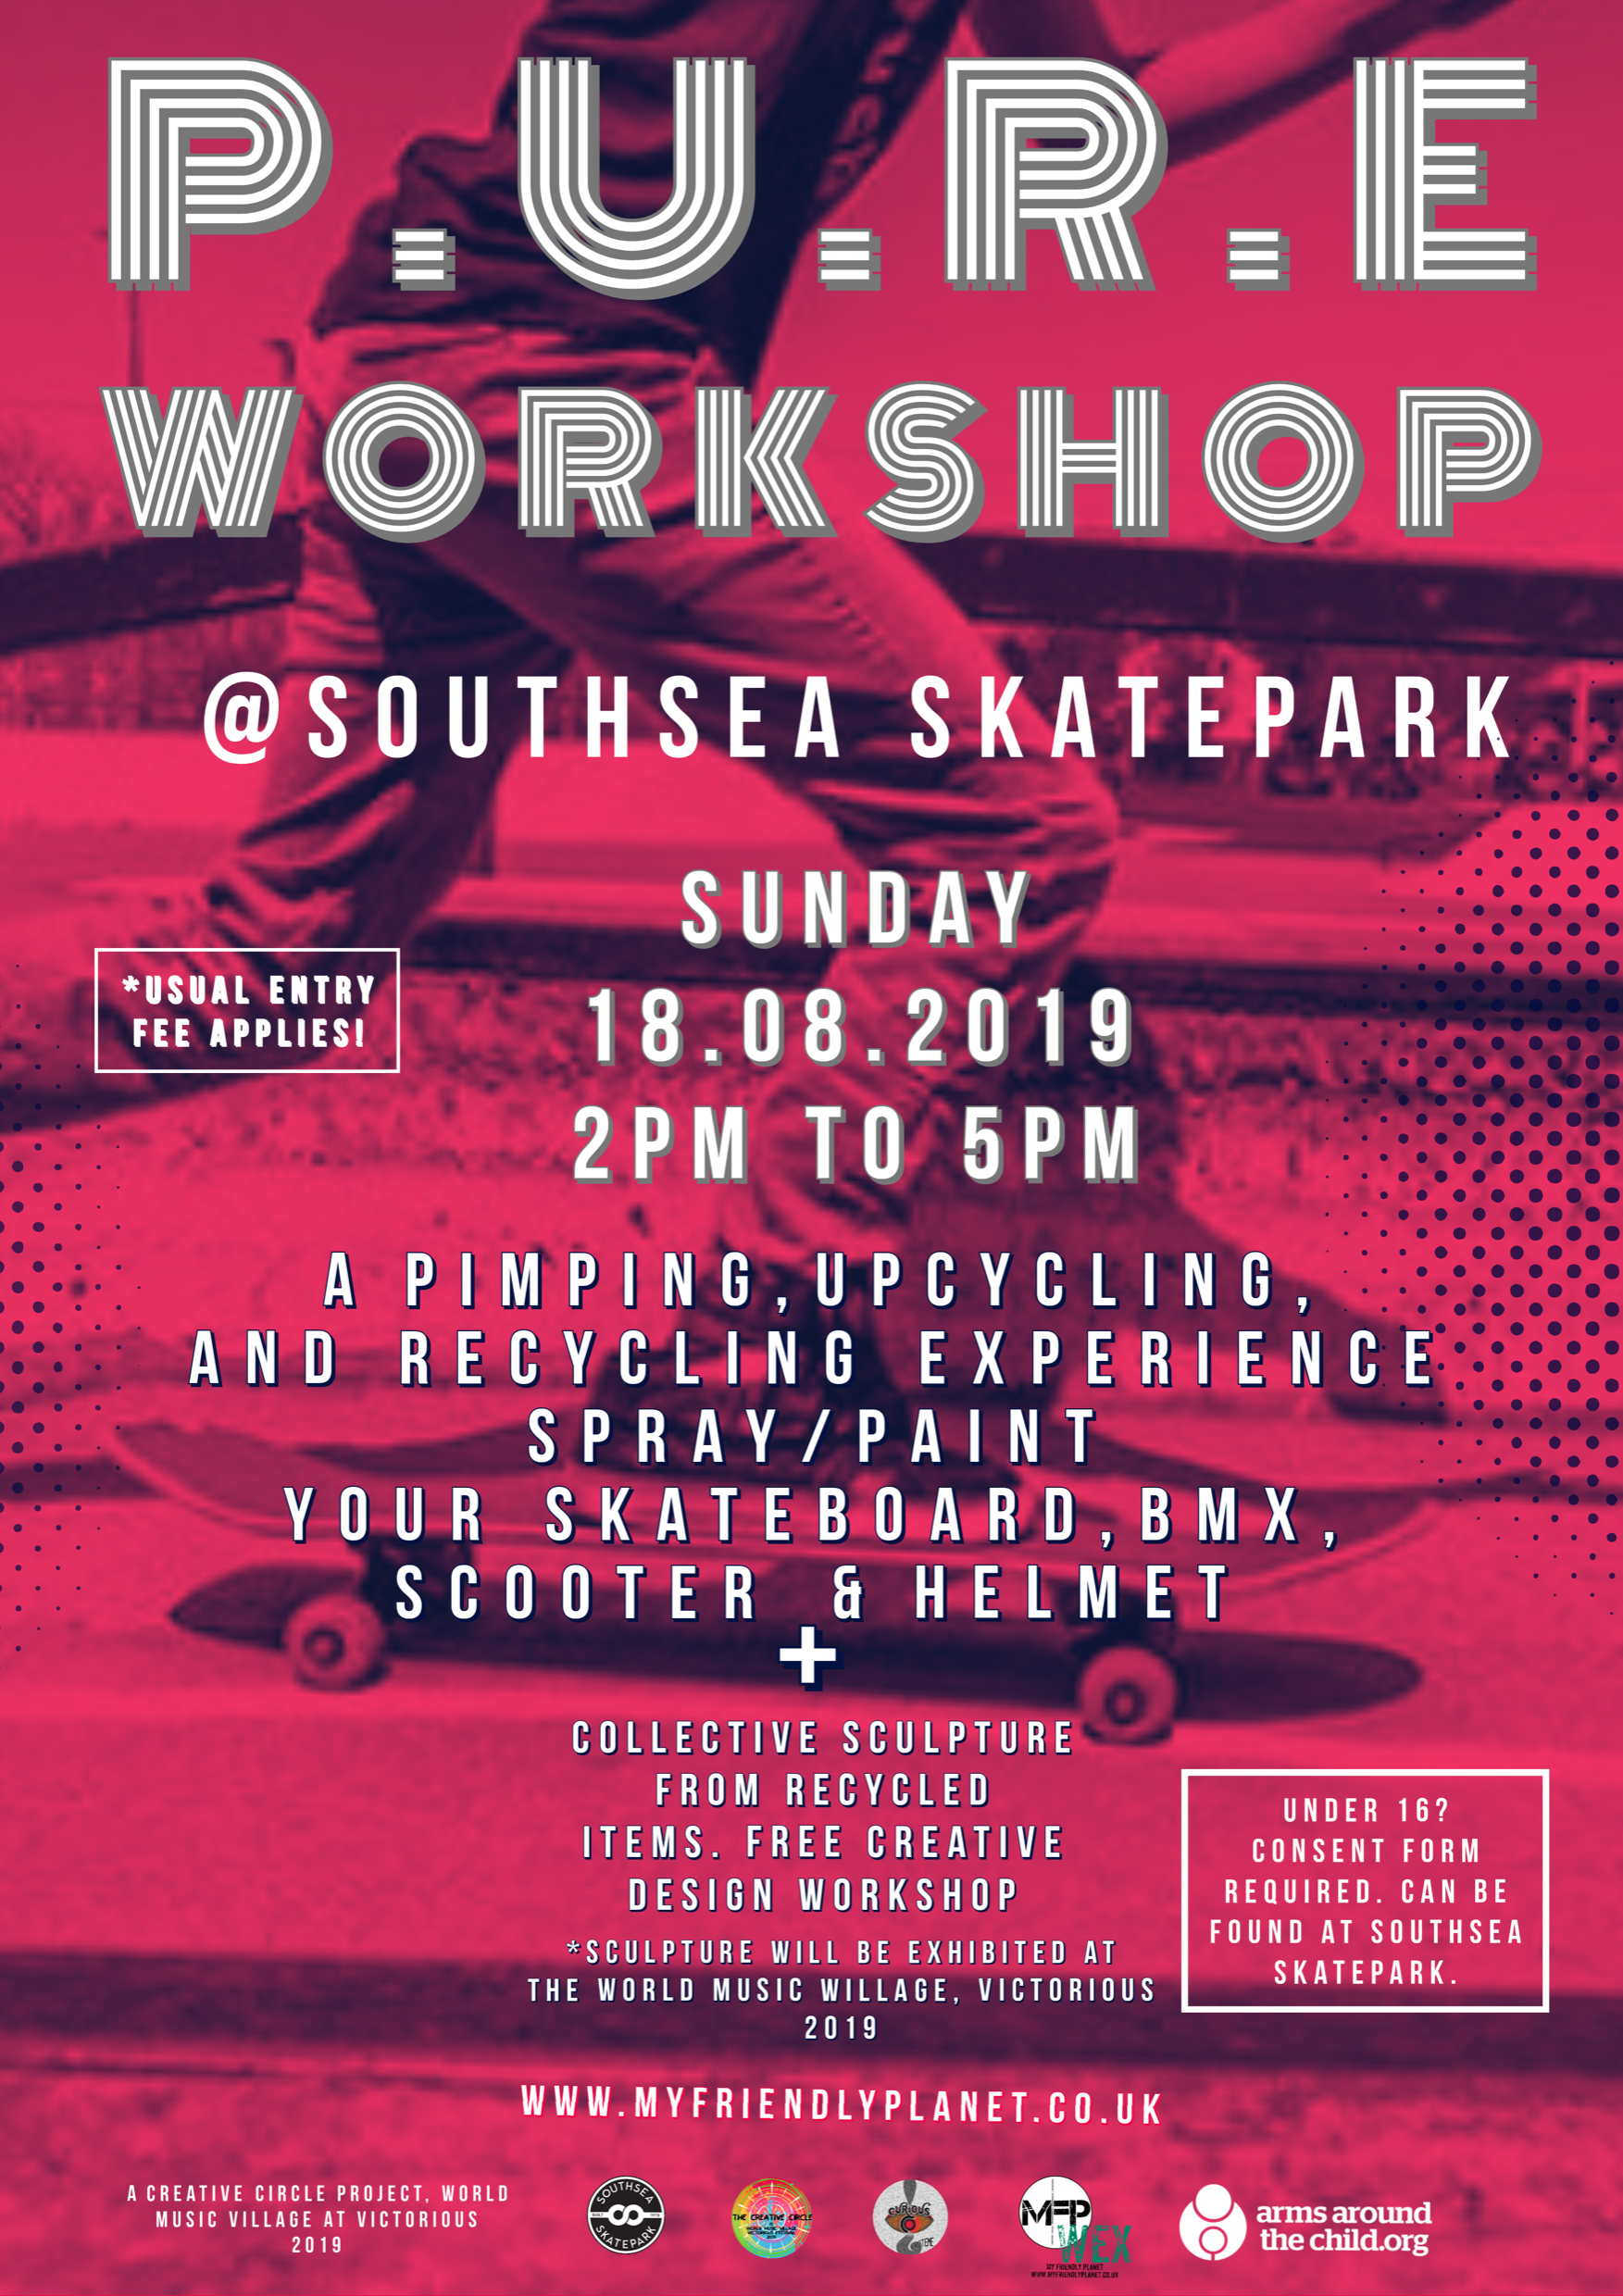 PURE Pimping_ Upcycling and Recycling Experience at Southsea Skatepark MFP 2019